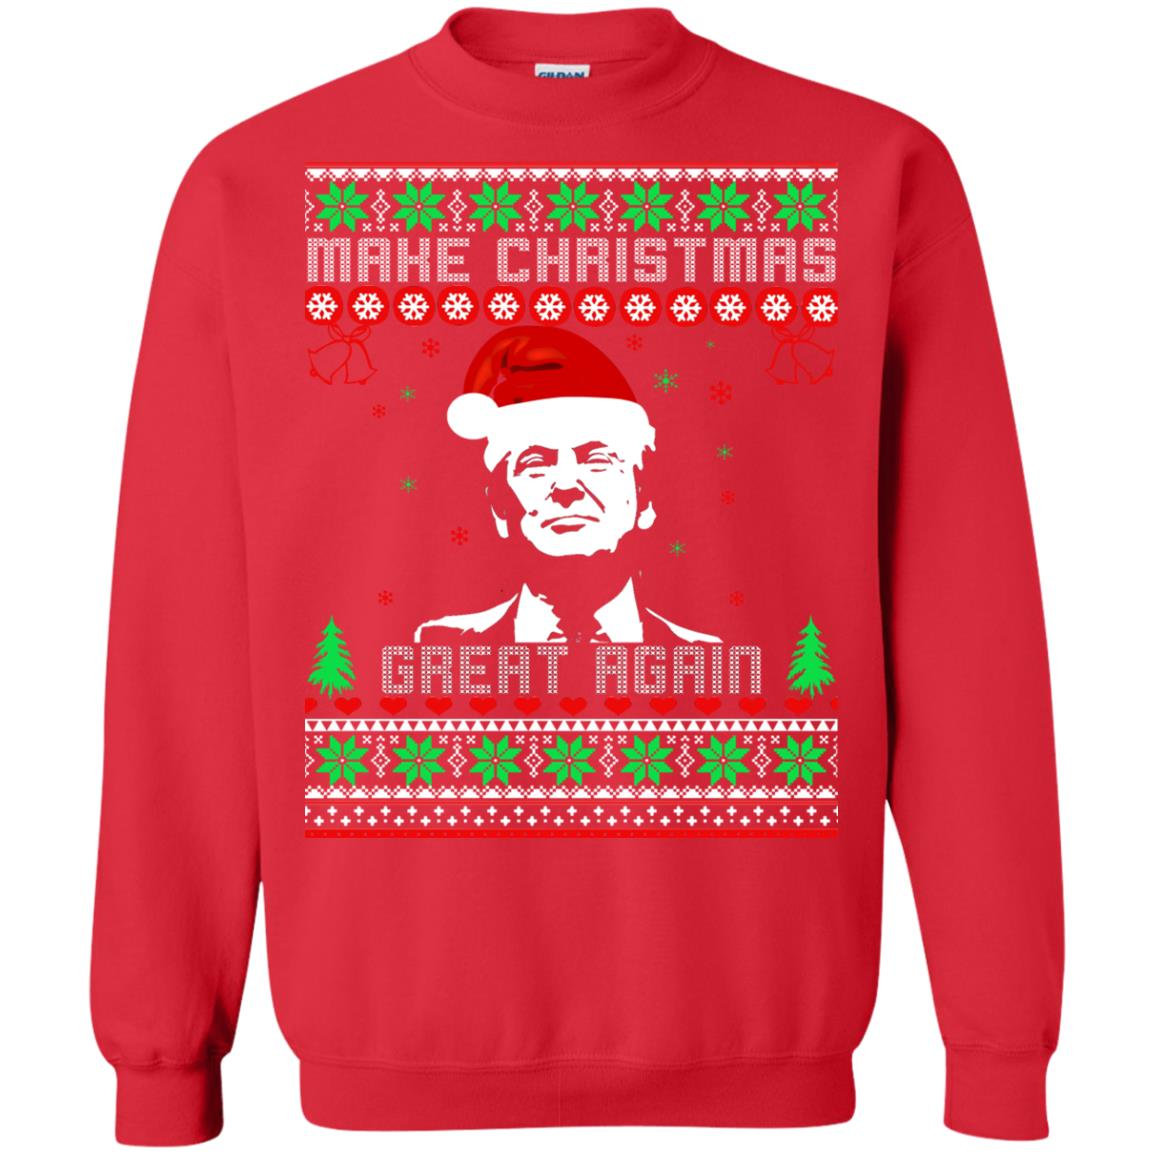 donald trump make christmas great again sweater shirt image 3046 500x500